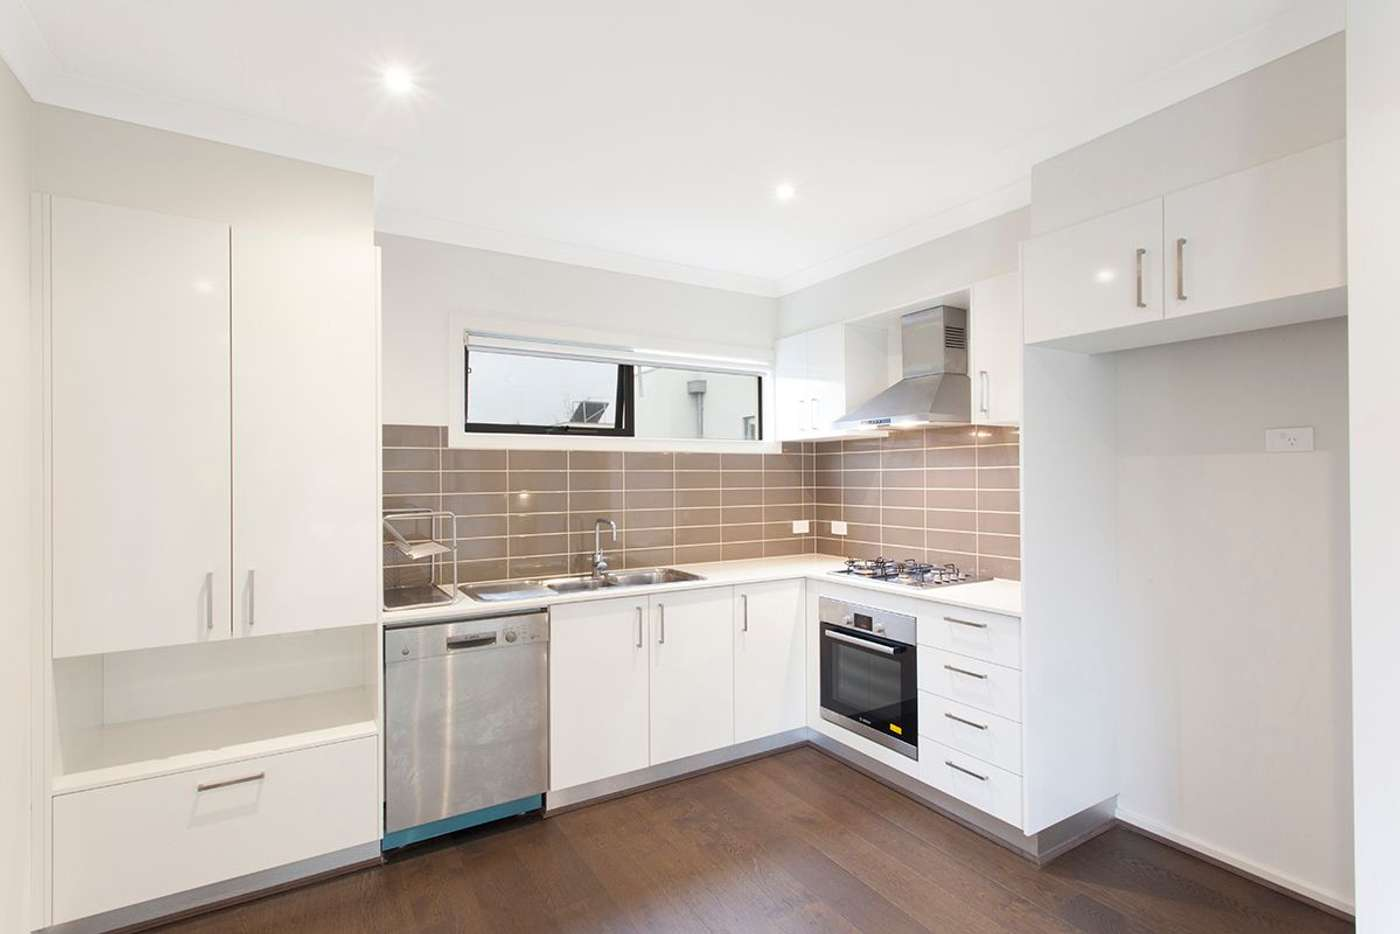 Main view of Homely townhouse listing, 4/4 Hinton Street, Glen Huntly VIC 3163